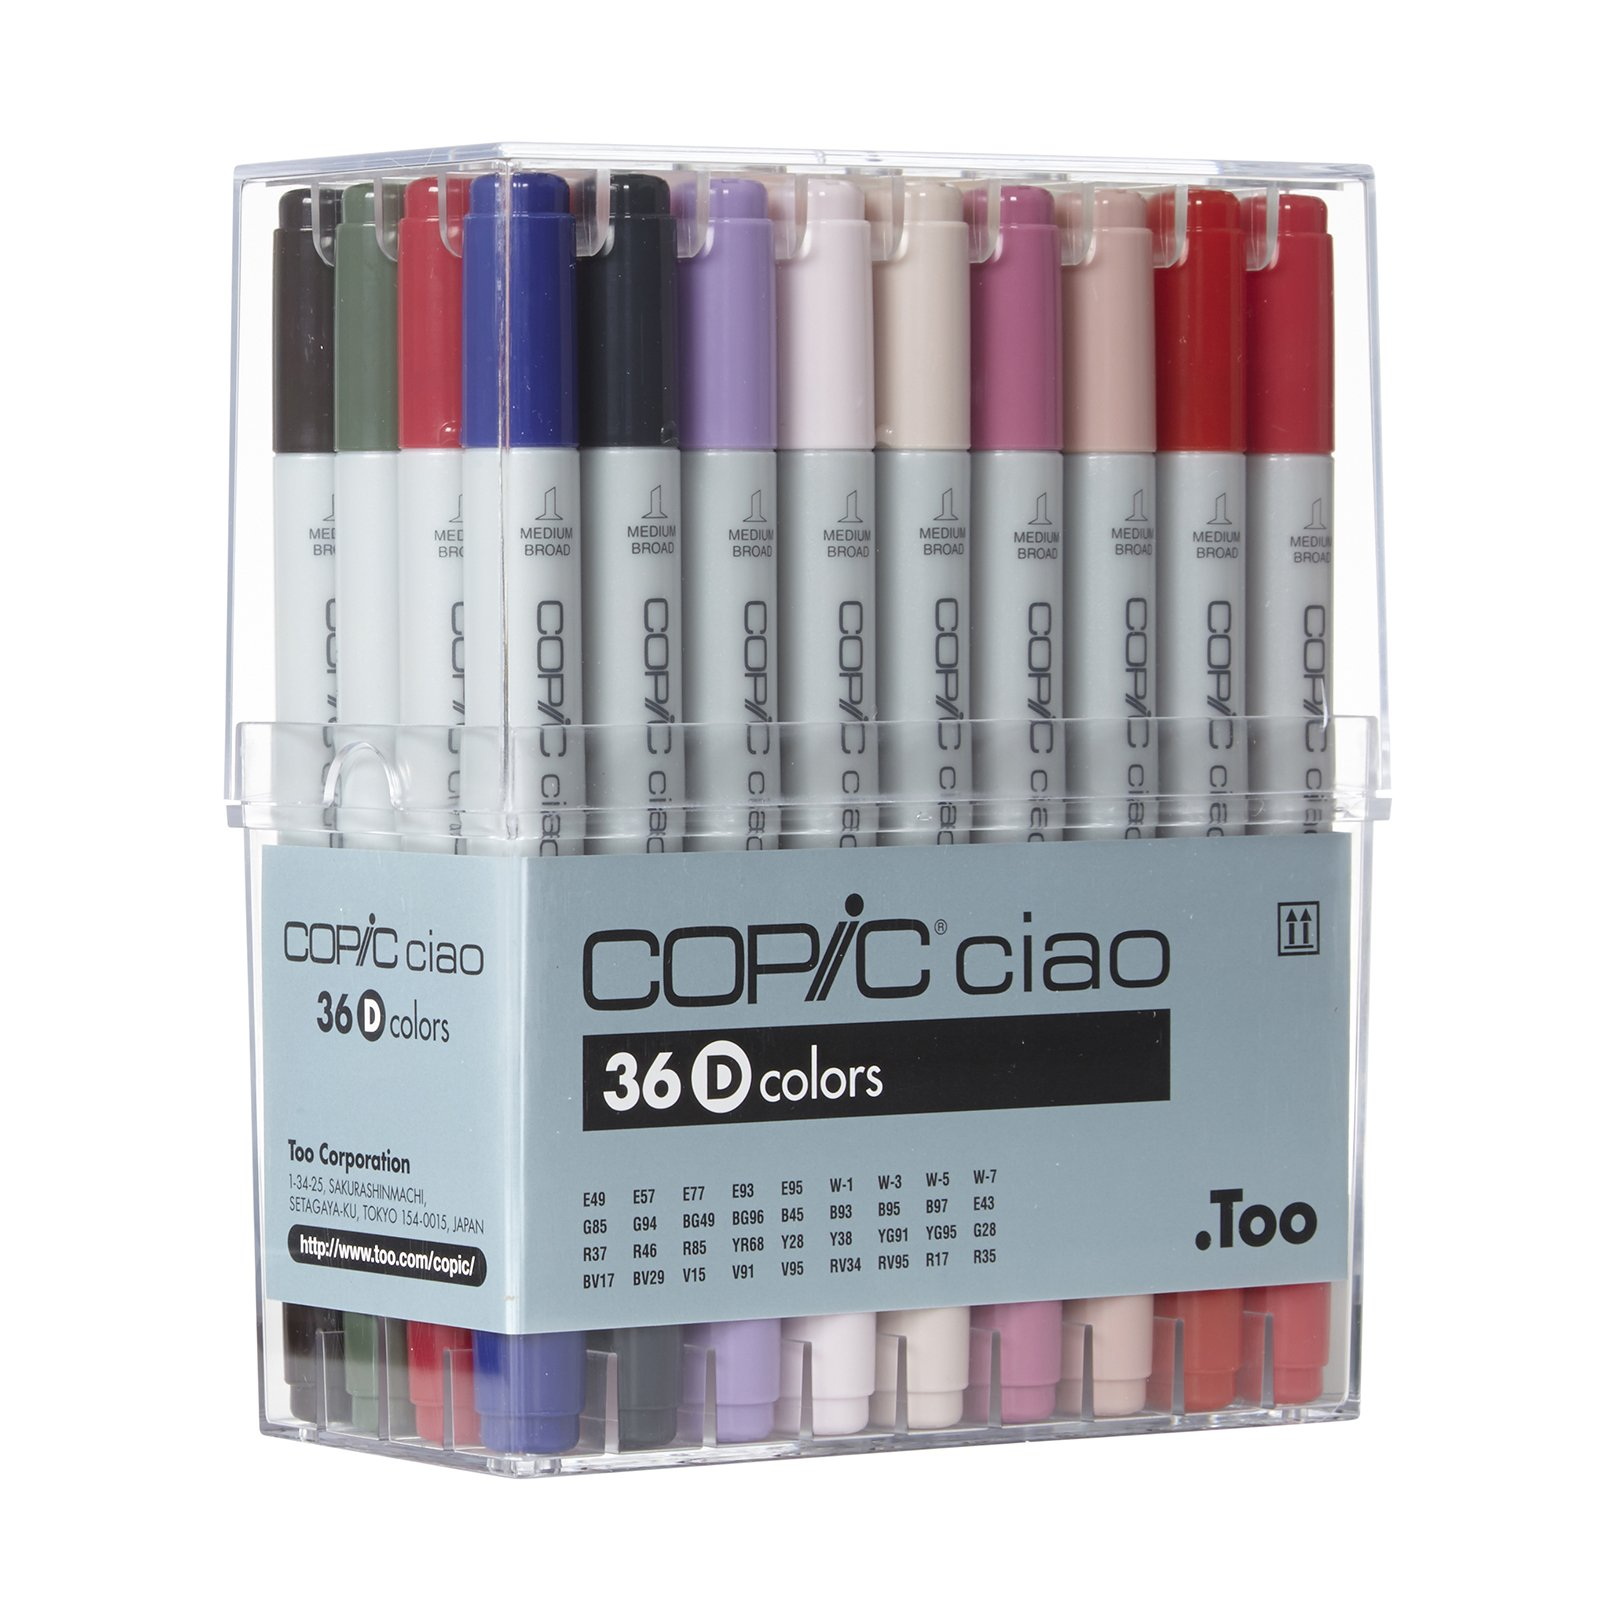 Copic I36D Ciao Markers Set D, 36-Piece